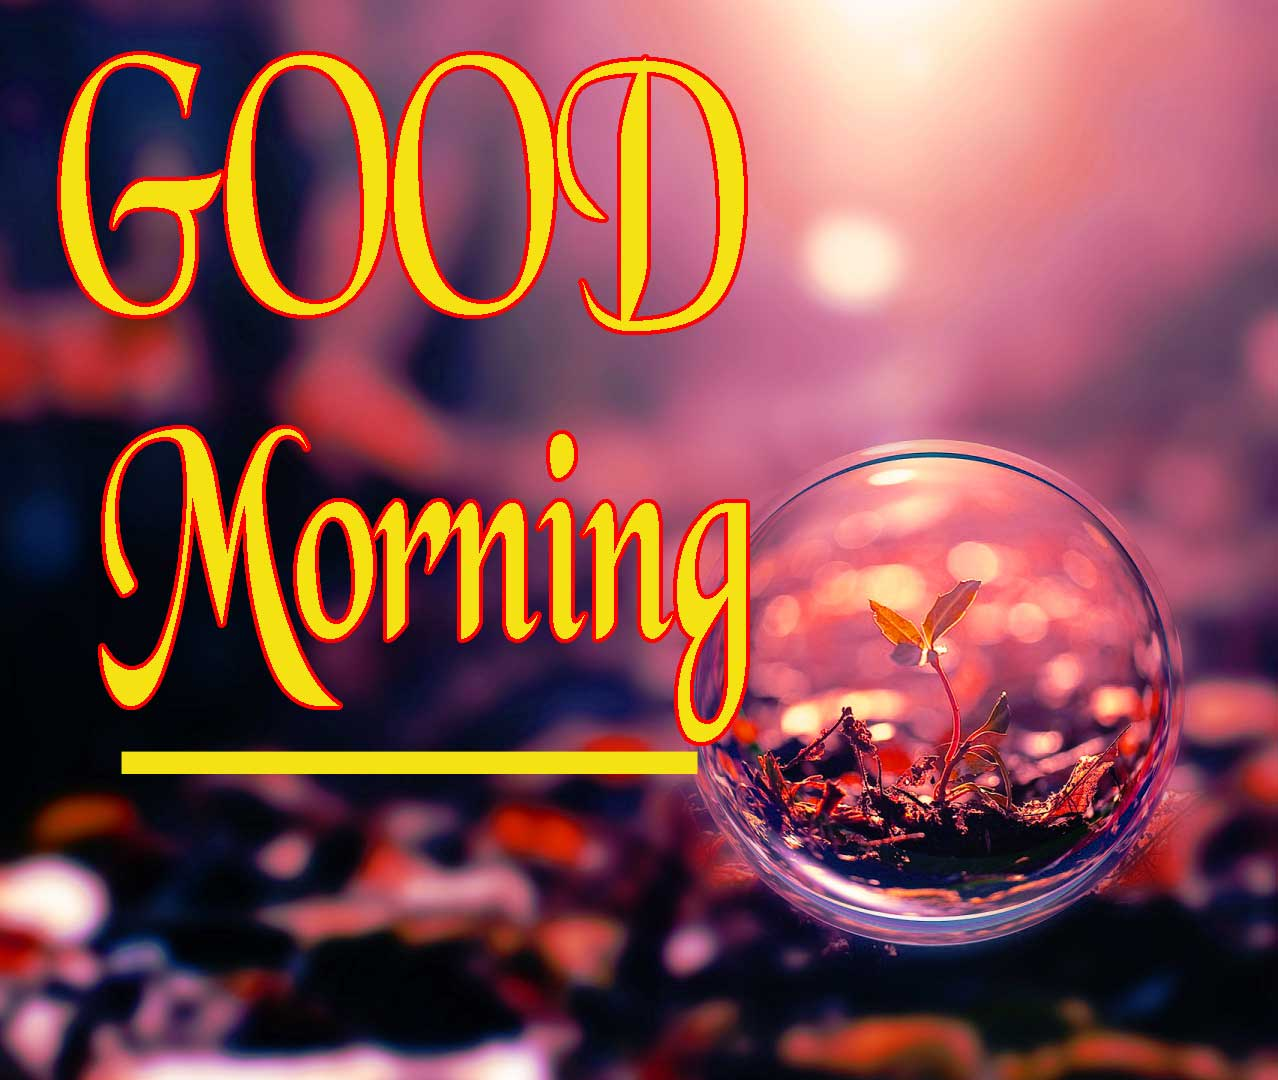 Good Morning Wallpaper 41